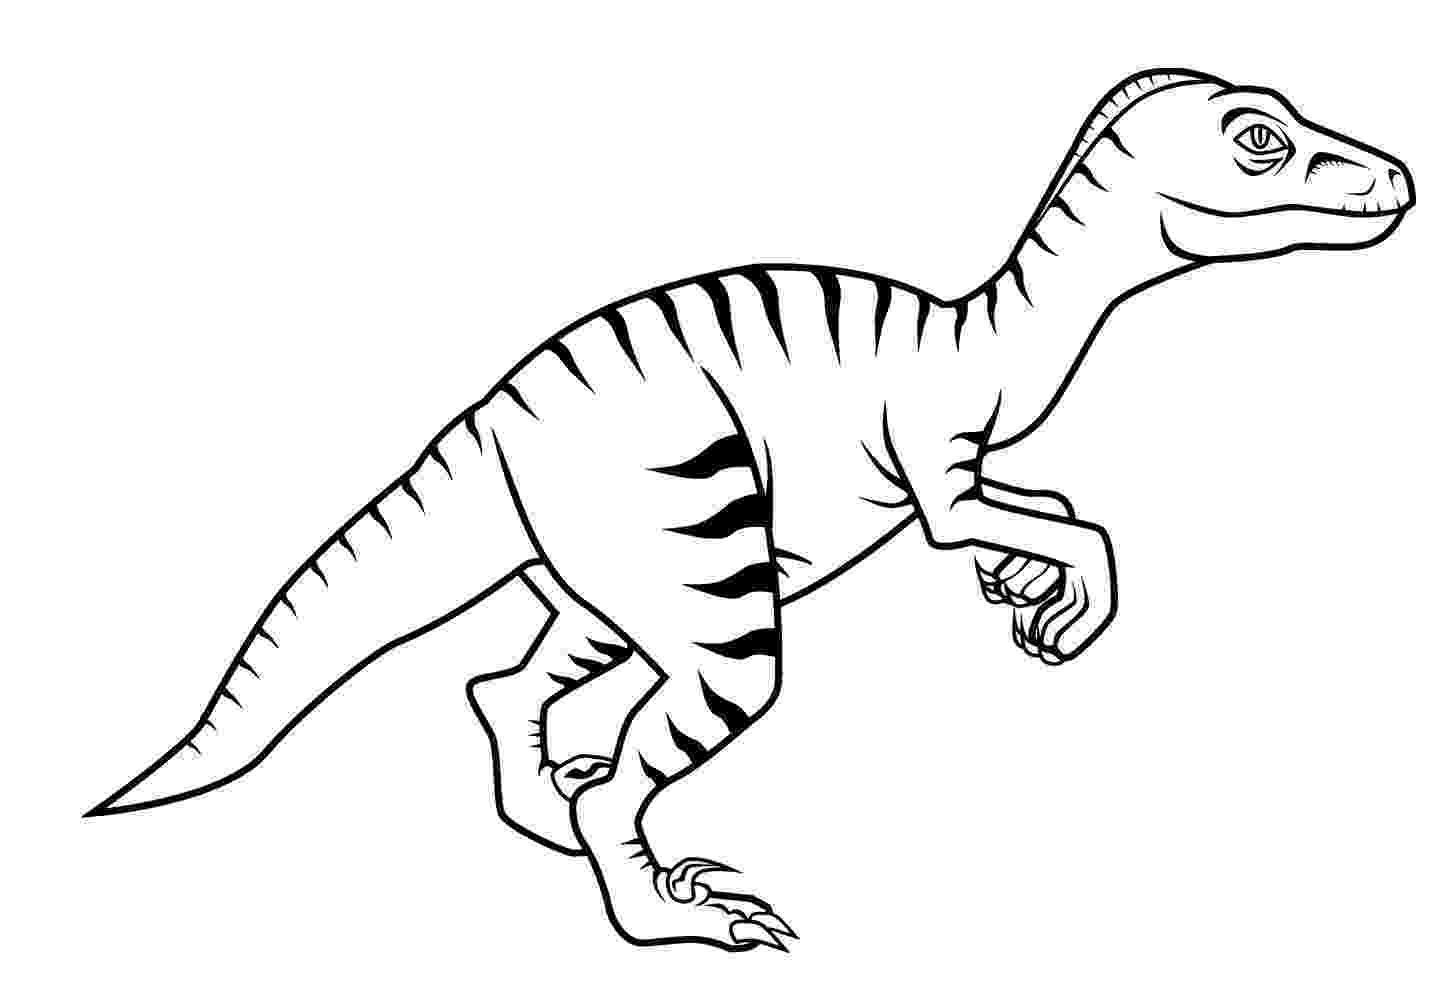 colouring pages velociraptor free new dinosaur velociraptor coloring pages for kids colouring velociraptor pages